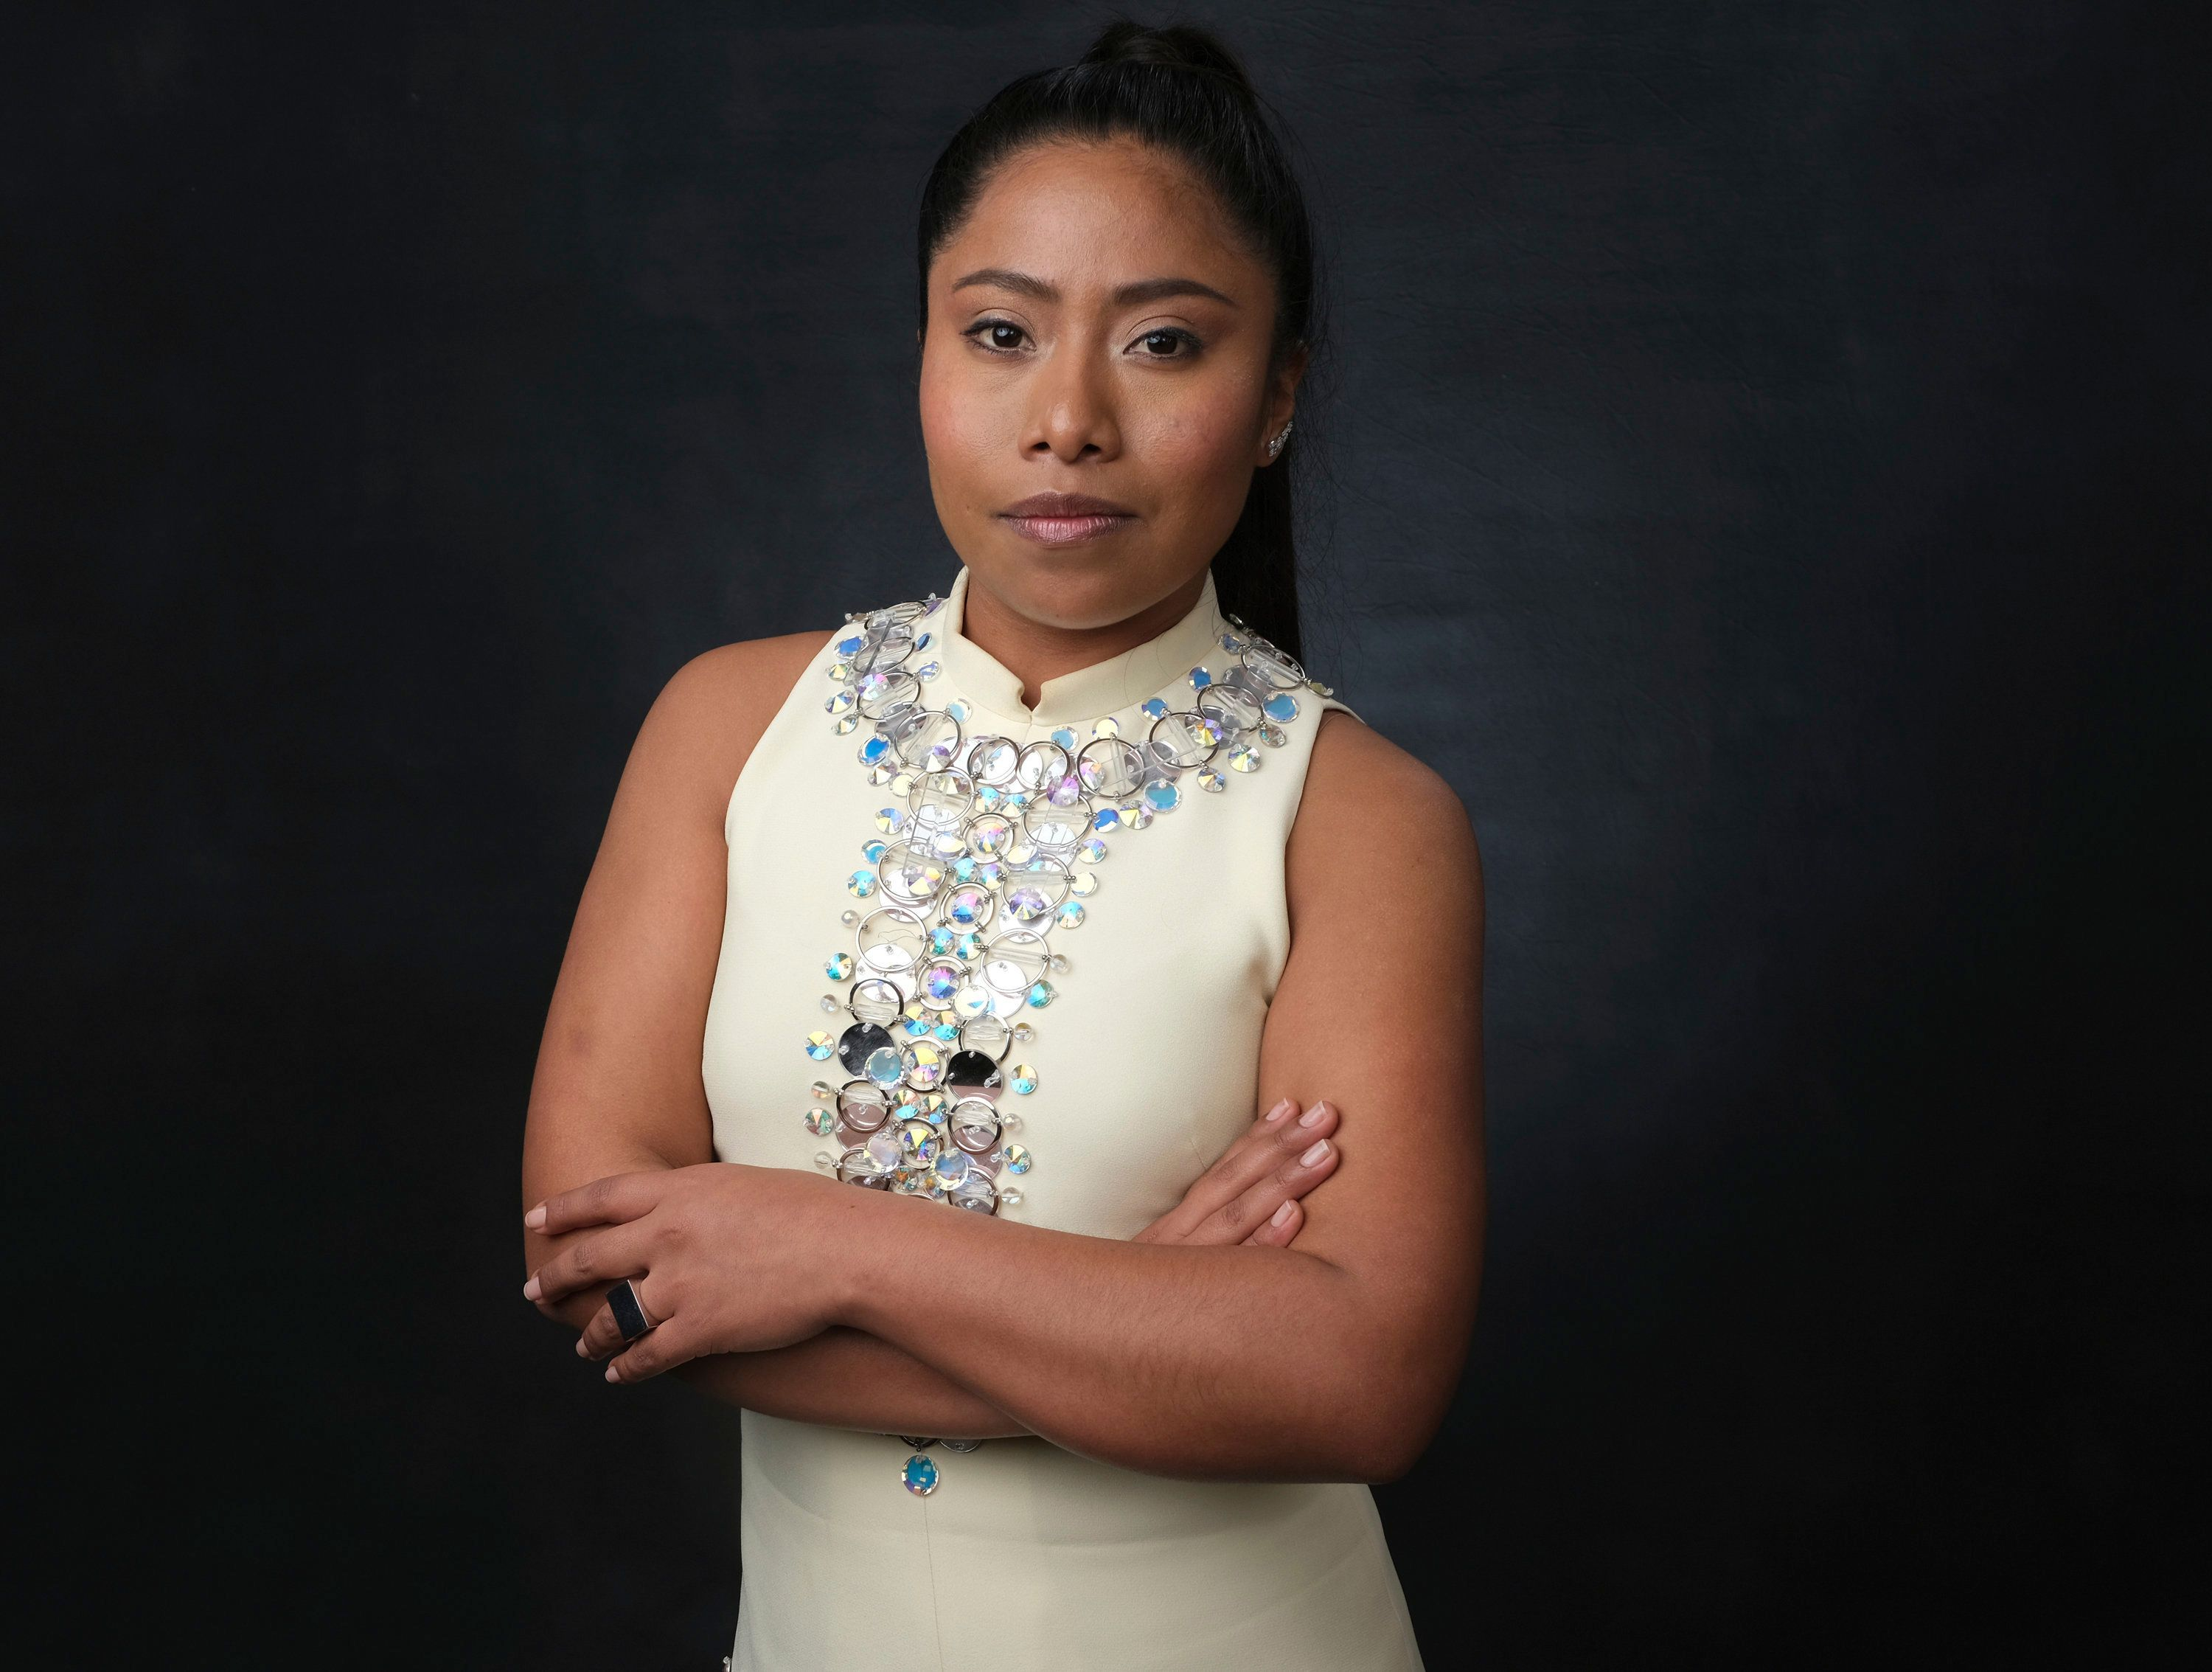 Yalitza Aparicio poses for a portrait at the 91st Academy Awards Nominees Luncheon at The Beverly Hilton Hotel on Monday, Feb. 4, 2019, in Beverly Hills, Calif. (Photo by Chris Pizzello/Invision/AP)